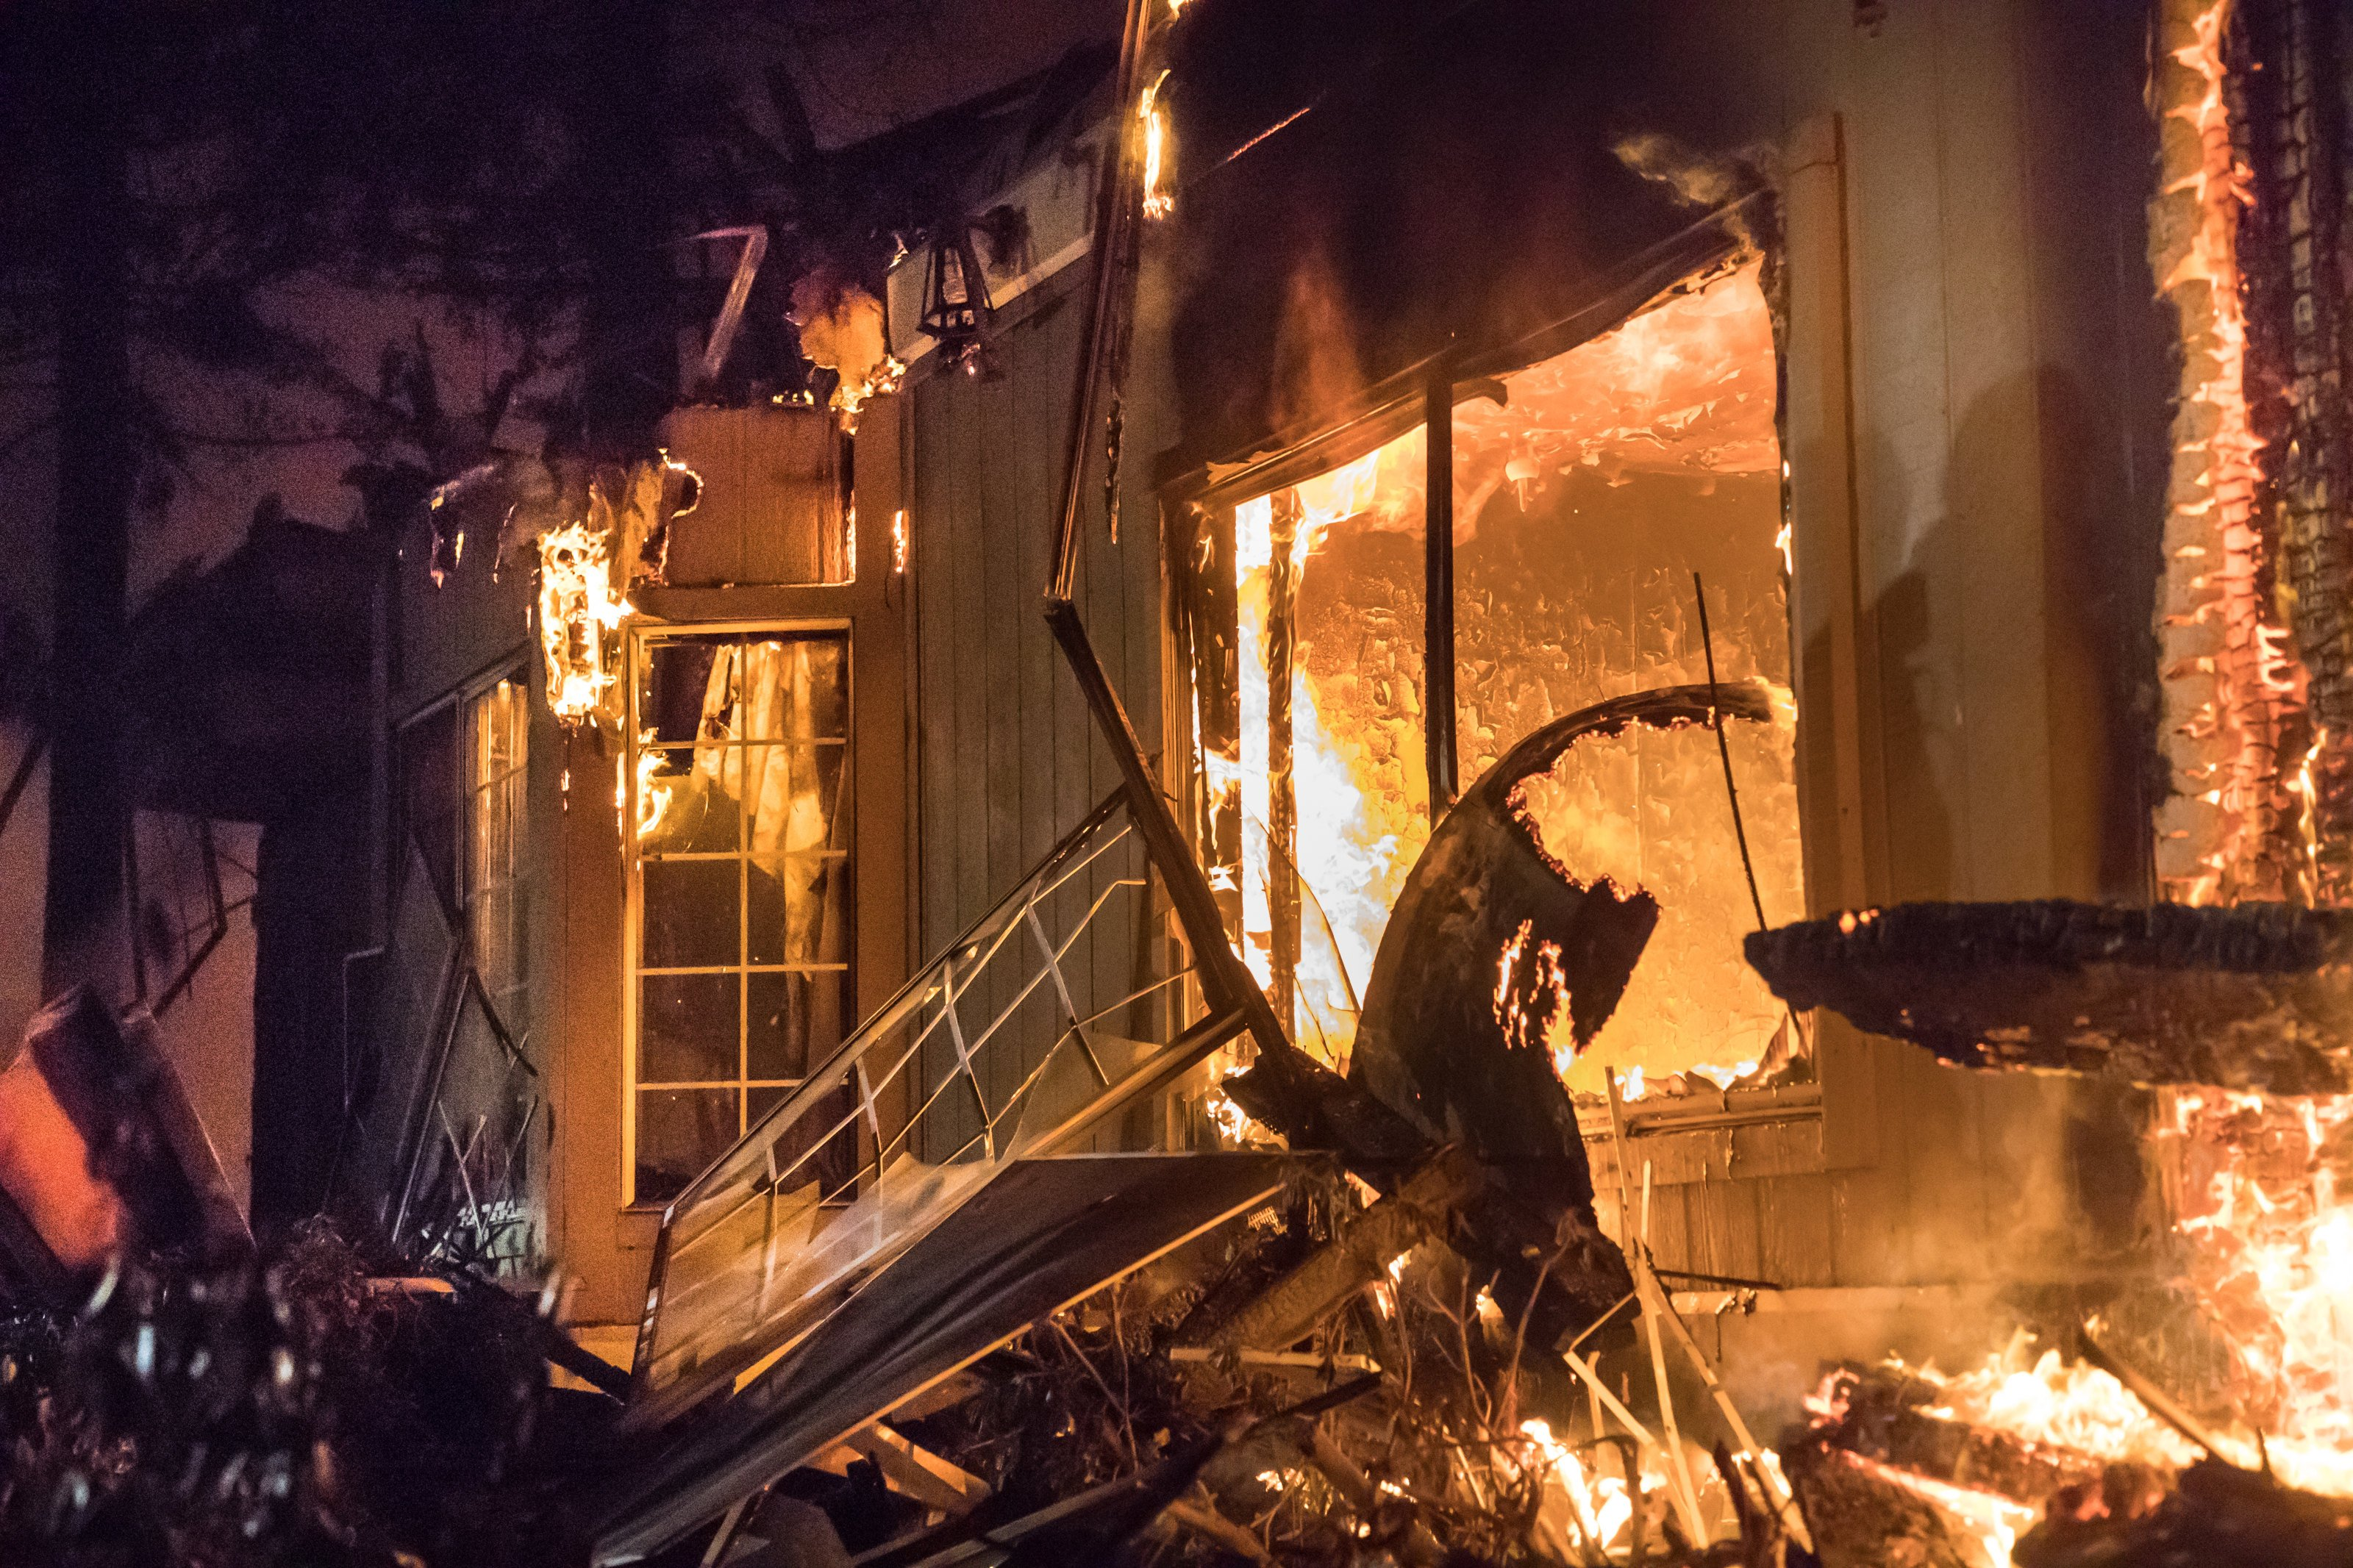 Santa Rosa Hilton Hotel burns to the ground on the evening of Monday, Oct. 9, 2017 in Santa Rosa, Calif.